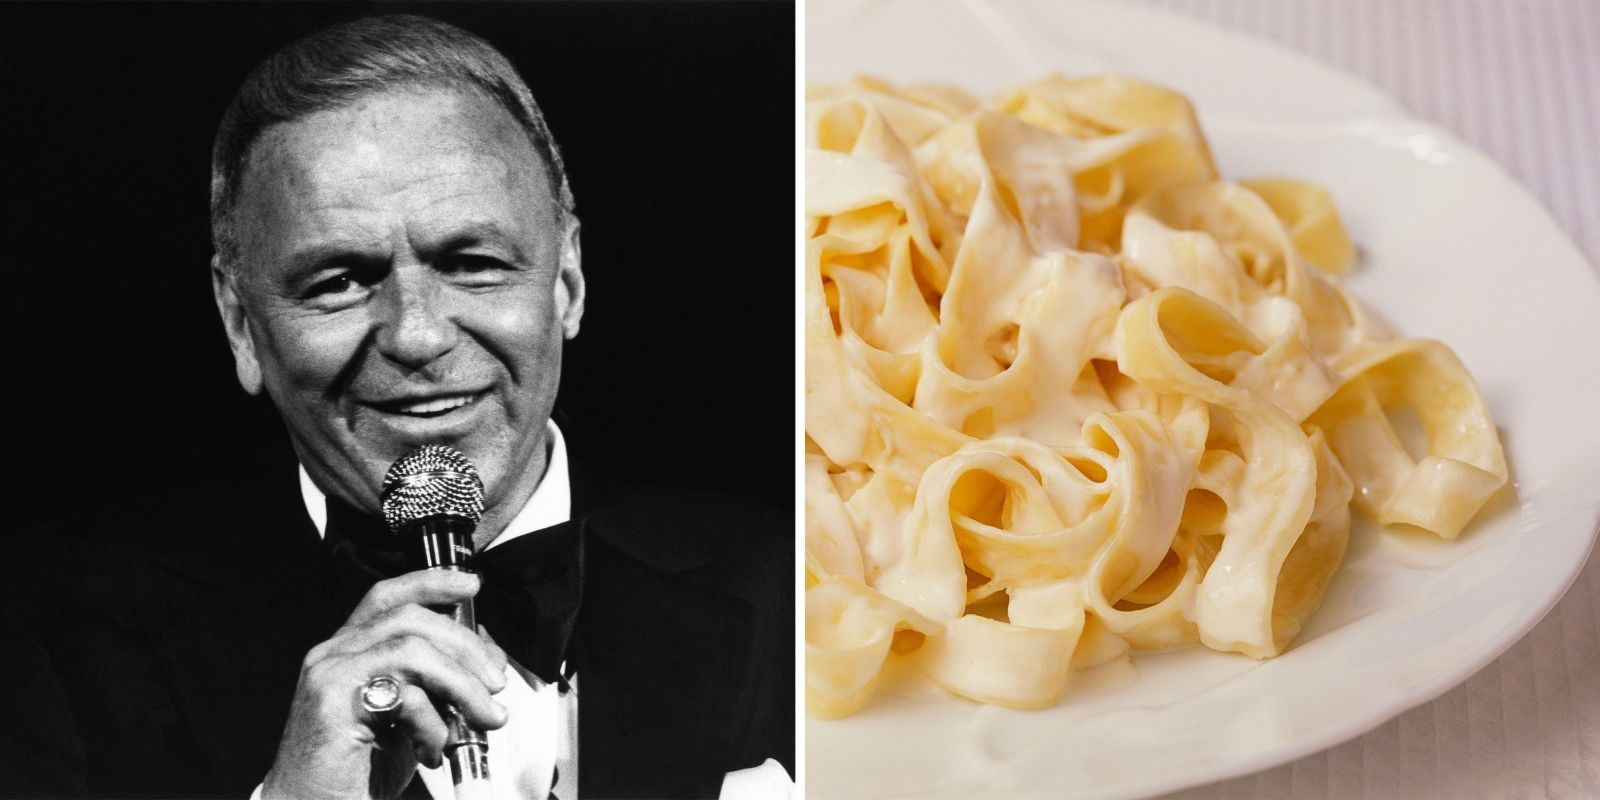 Frank Sinatra's Fettuccine Recipe Is a Perfect Dish for Pasta Lovers - TownandCountrymag.com